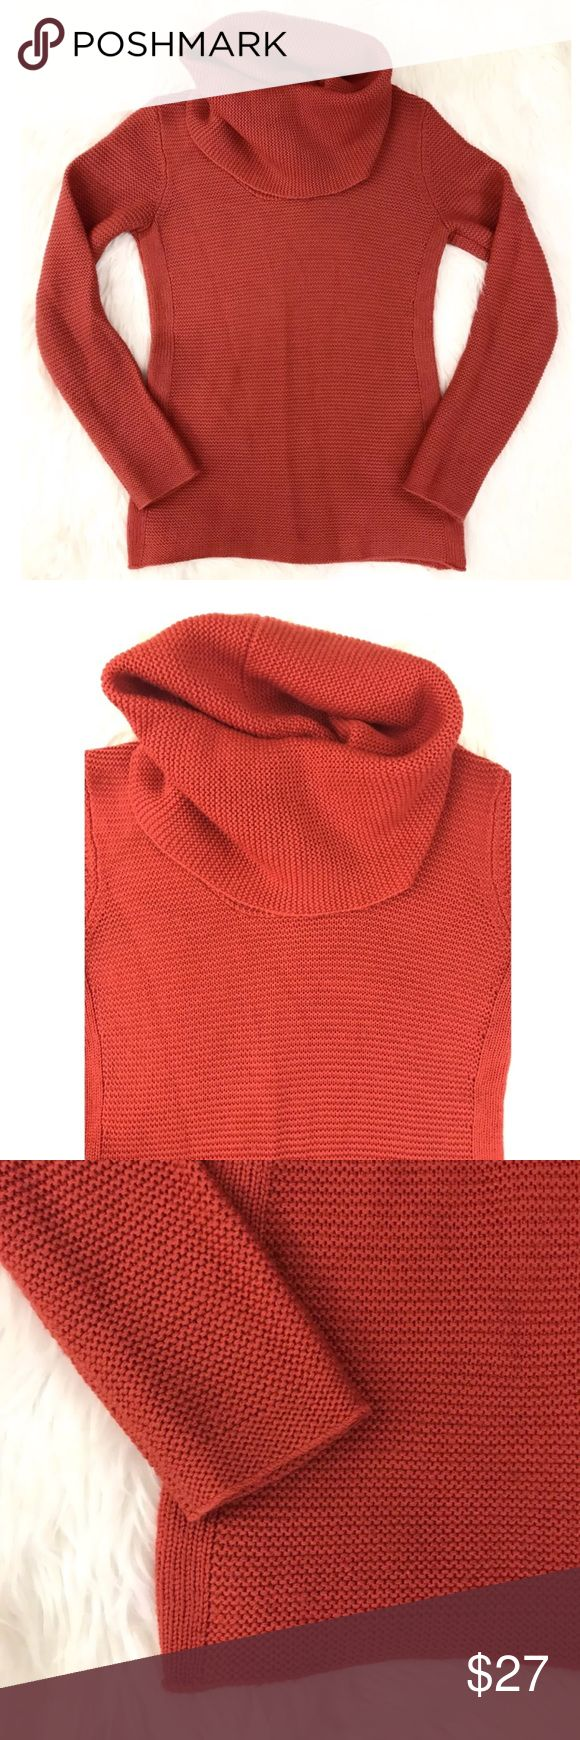 """BANANA REPUBLIC Orange Turtleneck Sweater BANANA REPUBLIC Orange Turtleneck Sweater Wool Blend Sz S Small  Brand: BANANA REPUBLIC Style: Sweater Size: Small Material: 40% Wool 38% Acrylic 22% Viscose Condition: Excellent Pre-Owned Condition. Please review photos.  Measurements (Measured flat, un-stretched. All measurements are approximate.)  Armpit to Armpit: 16.5"""" Length: 24"""" Banana Republic Sweaters Cowl & Turtlenecks"""